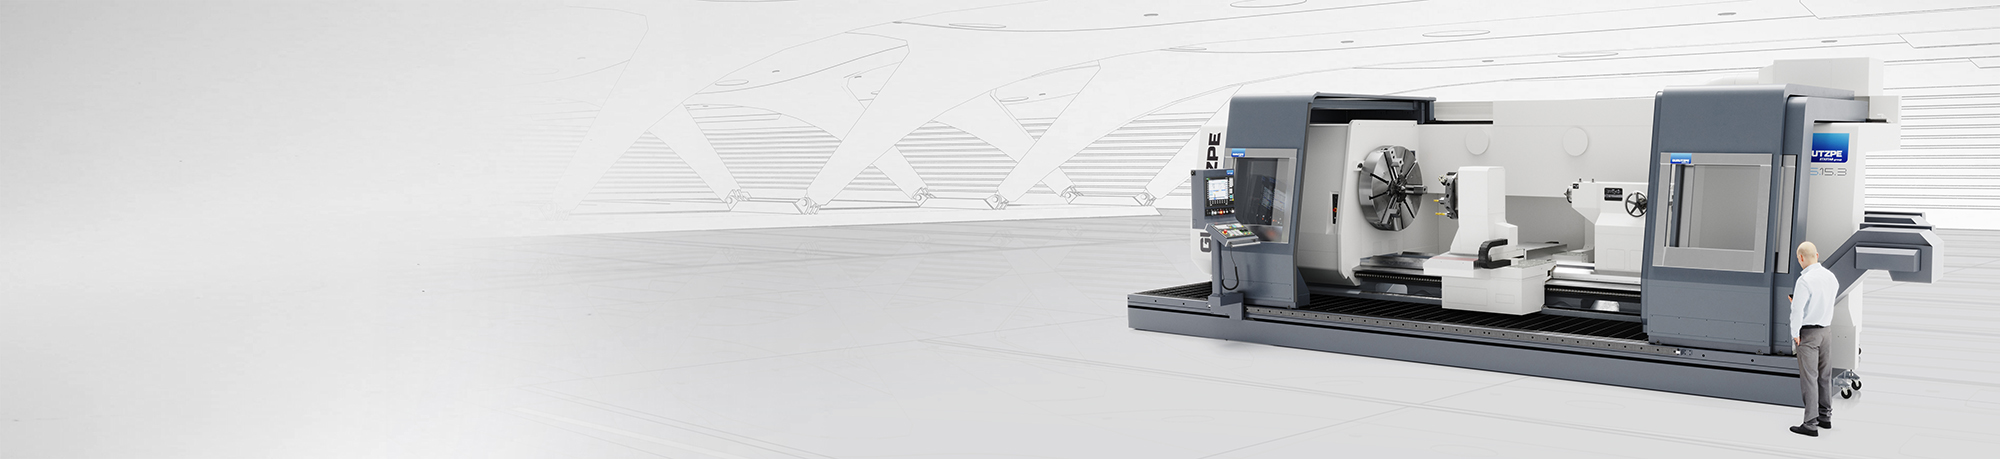 serie-gl-horizontal-lathe-heavy-duty-slider